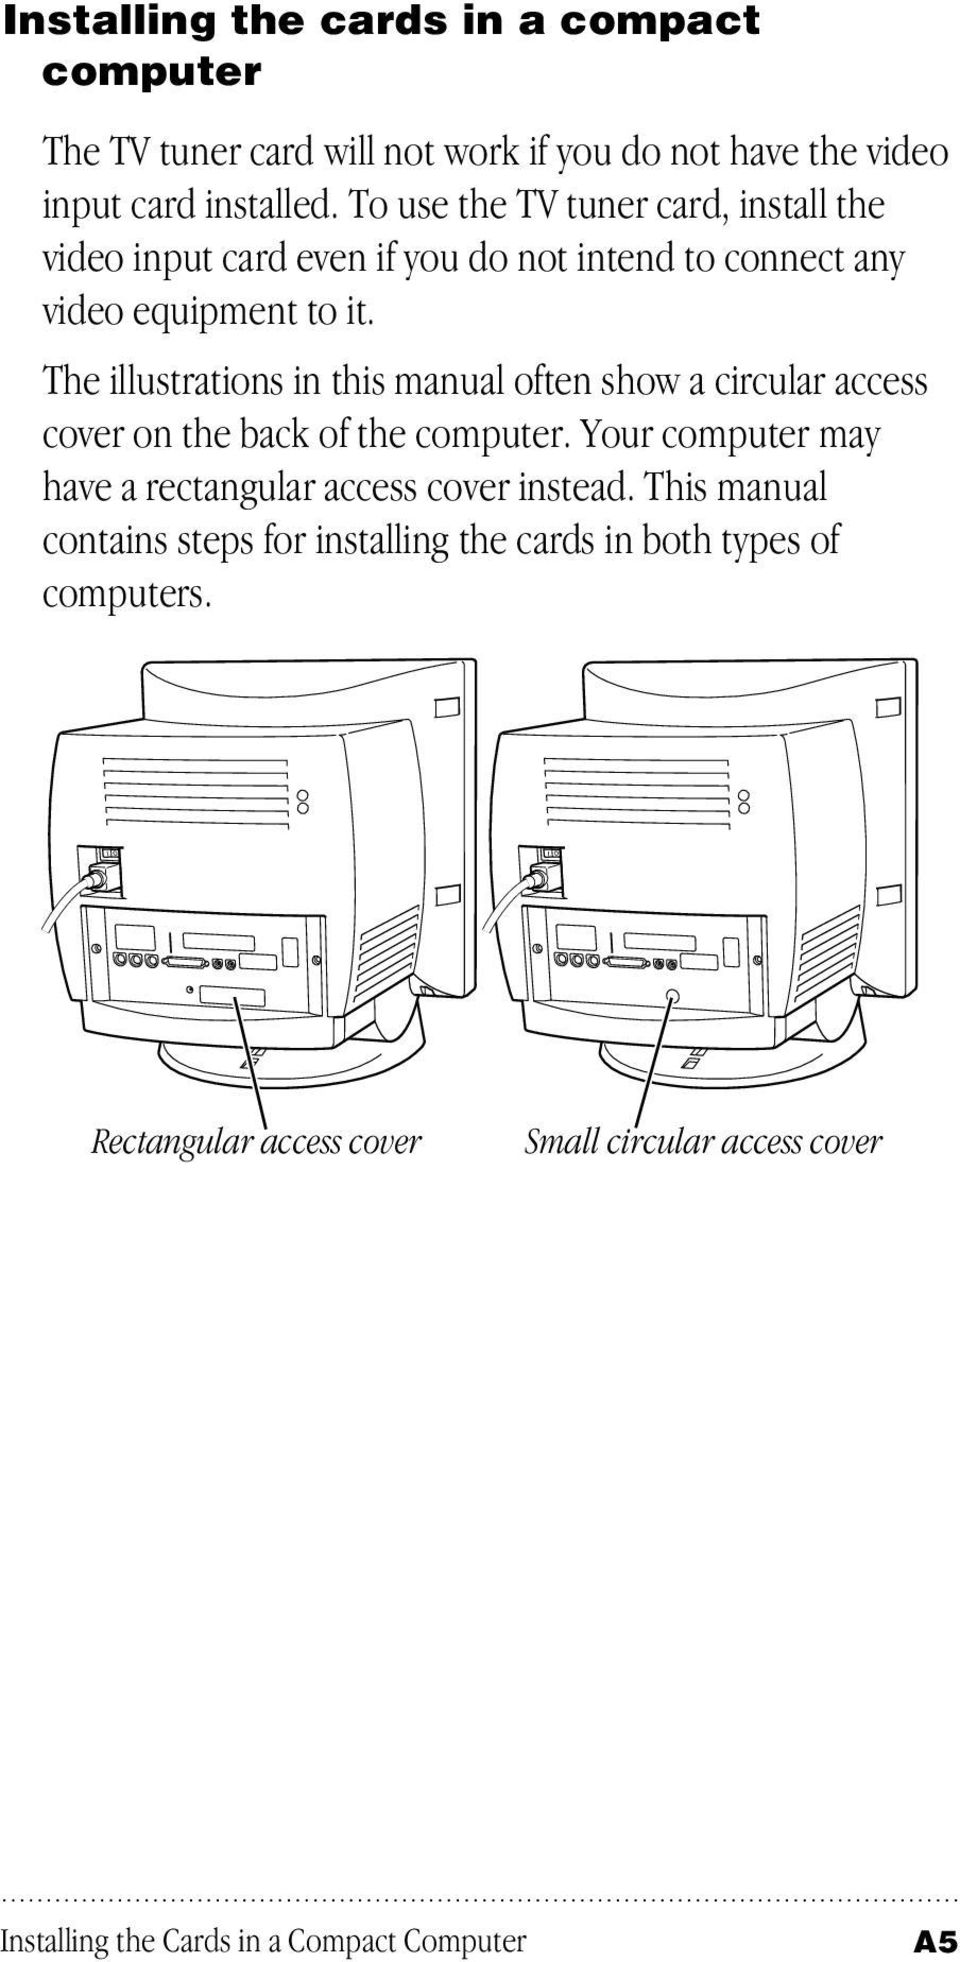 The illustrations in this manual often show a circular access cover on the back of the computer.